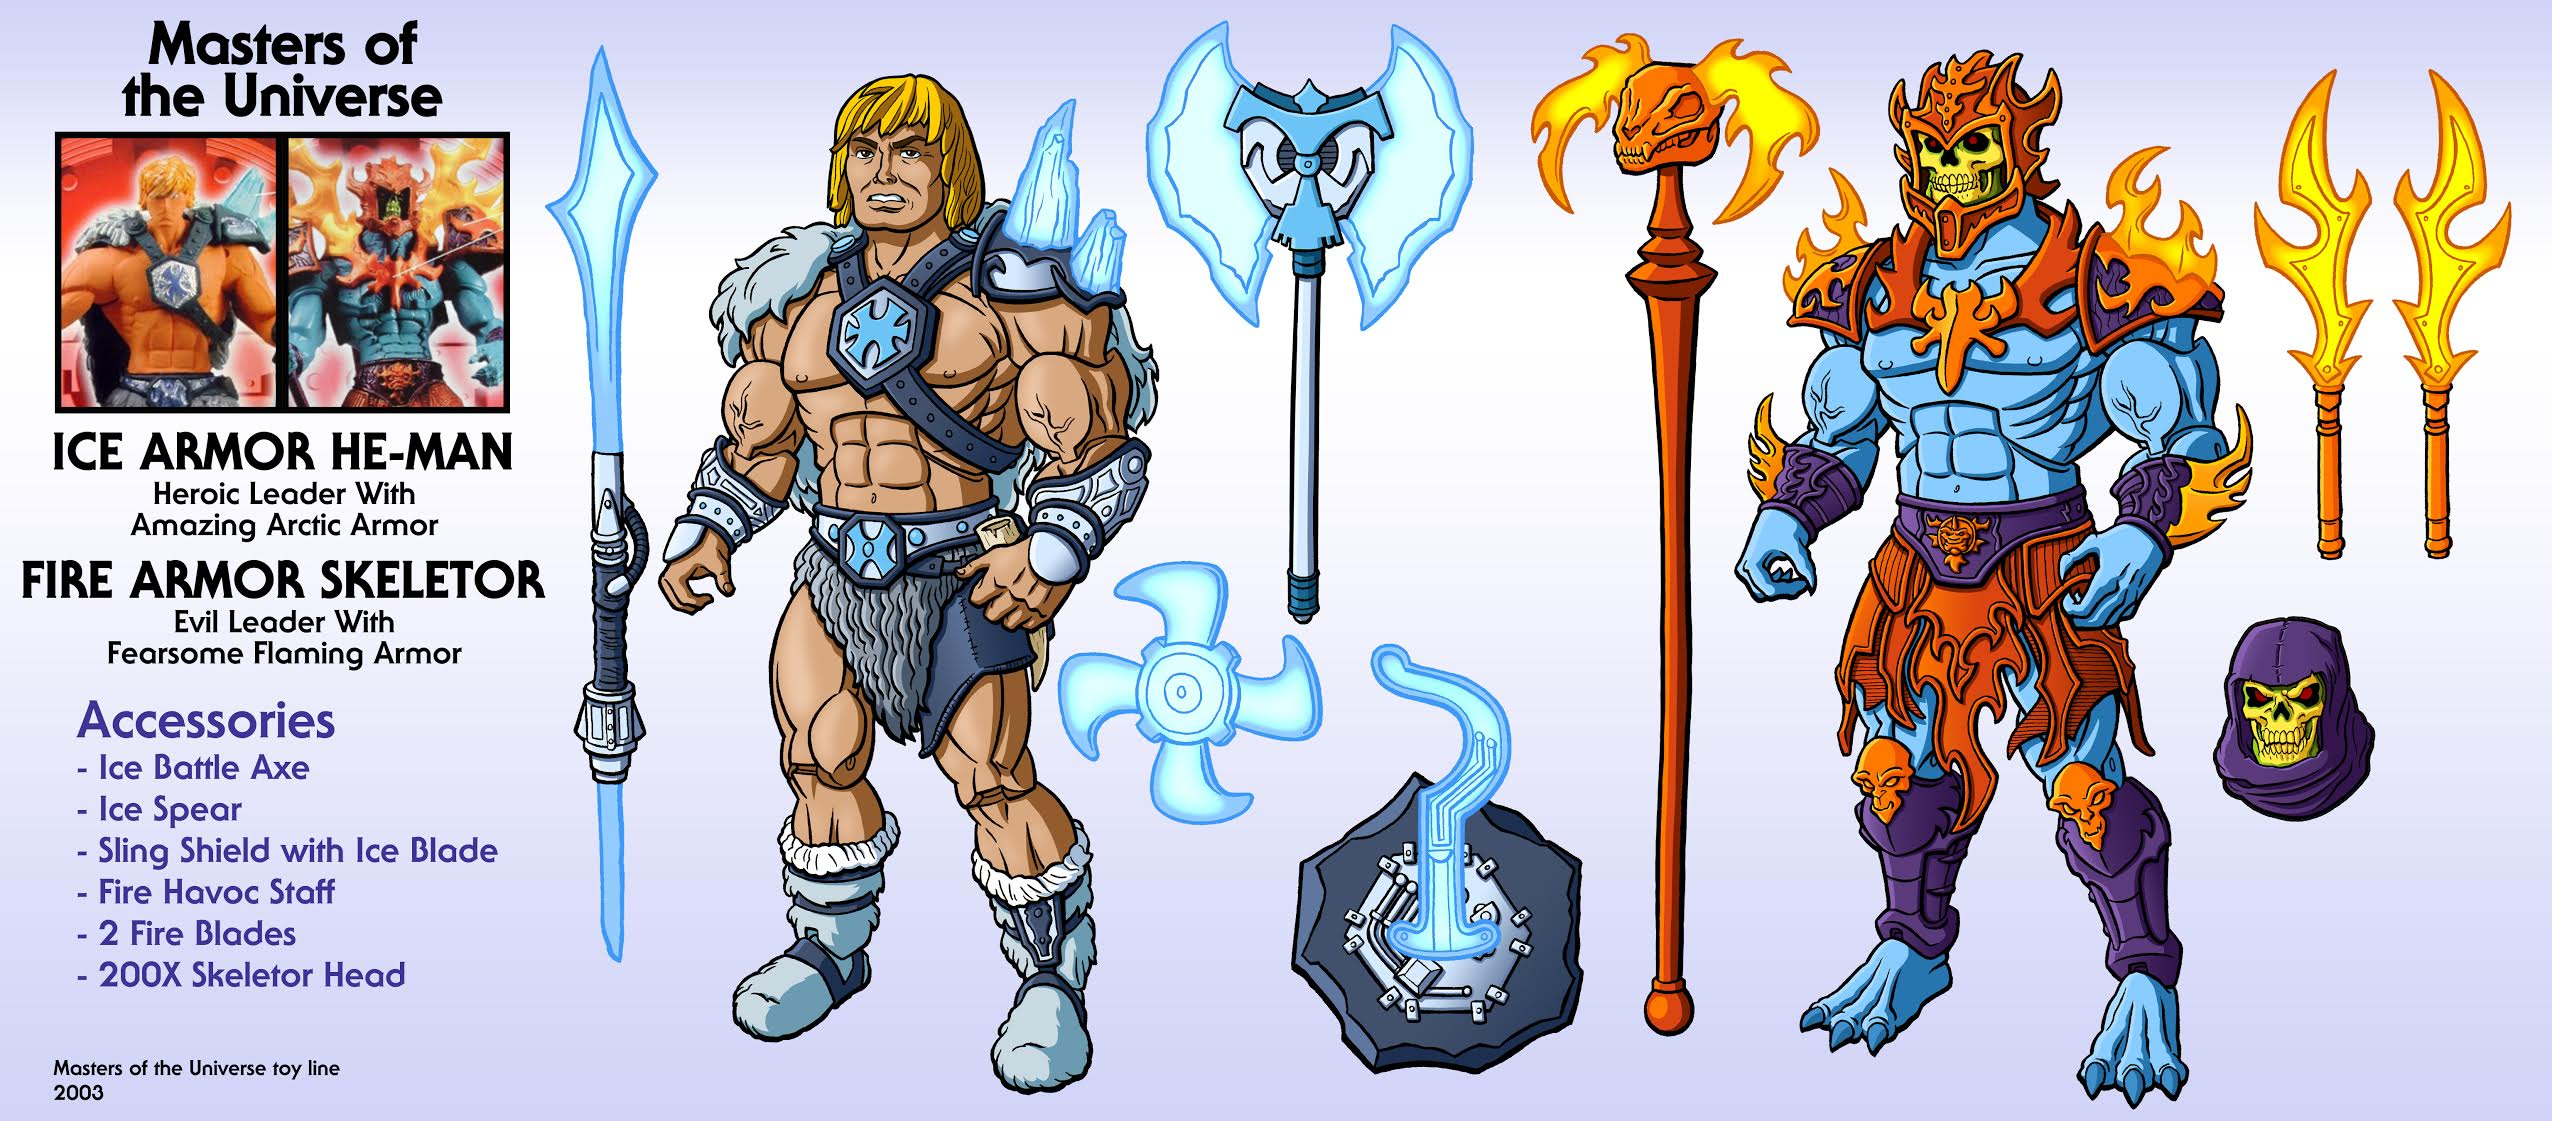 CASTLE GRAYSKULL Long Axe MOTU HE-Man And The Masters of the Universe Weapon